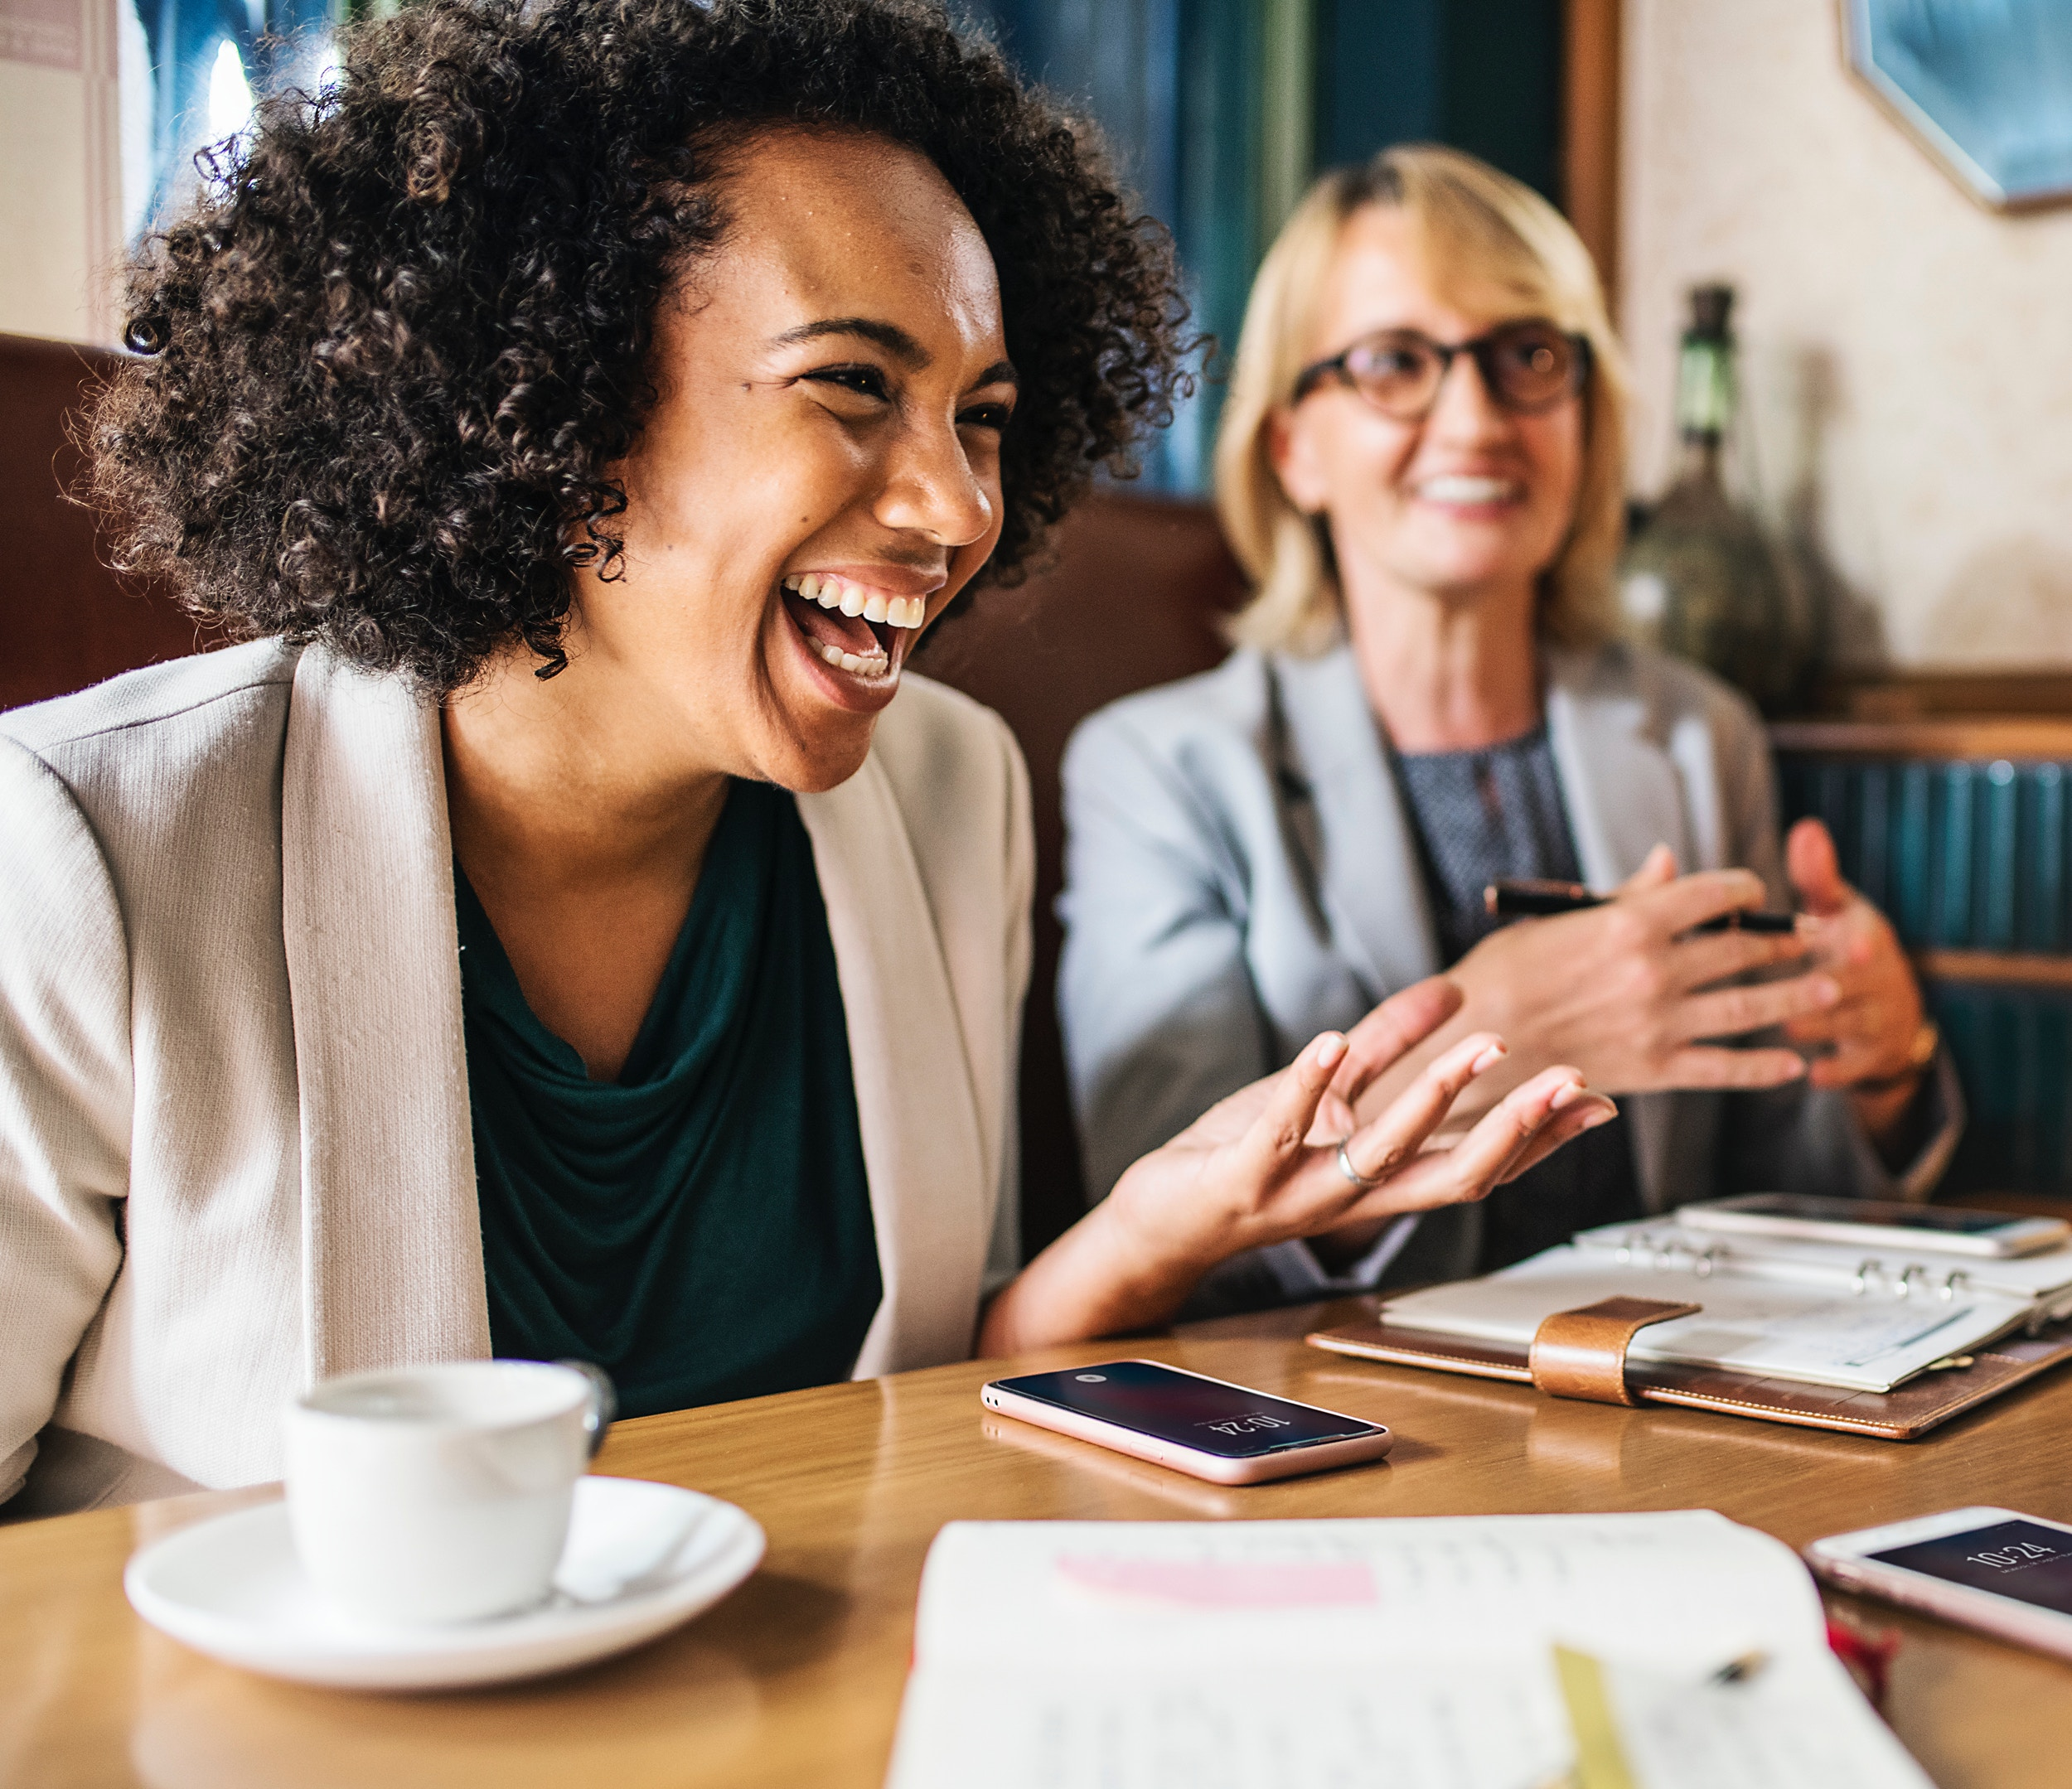 Building a Vibrant Company Culture with Employee Engagement Tools